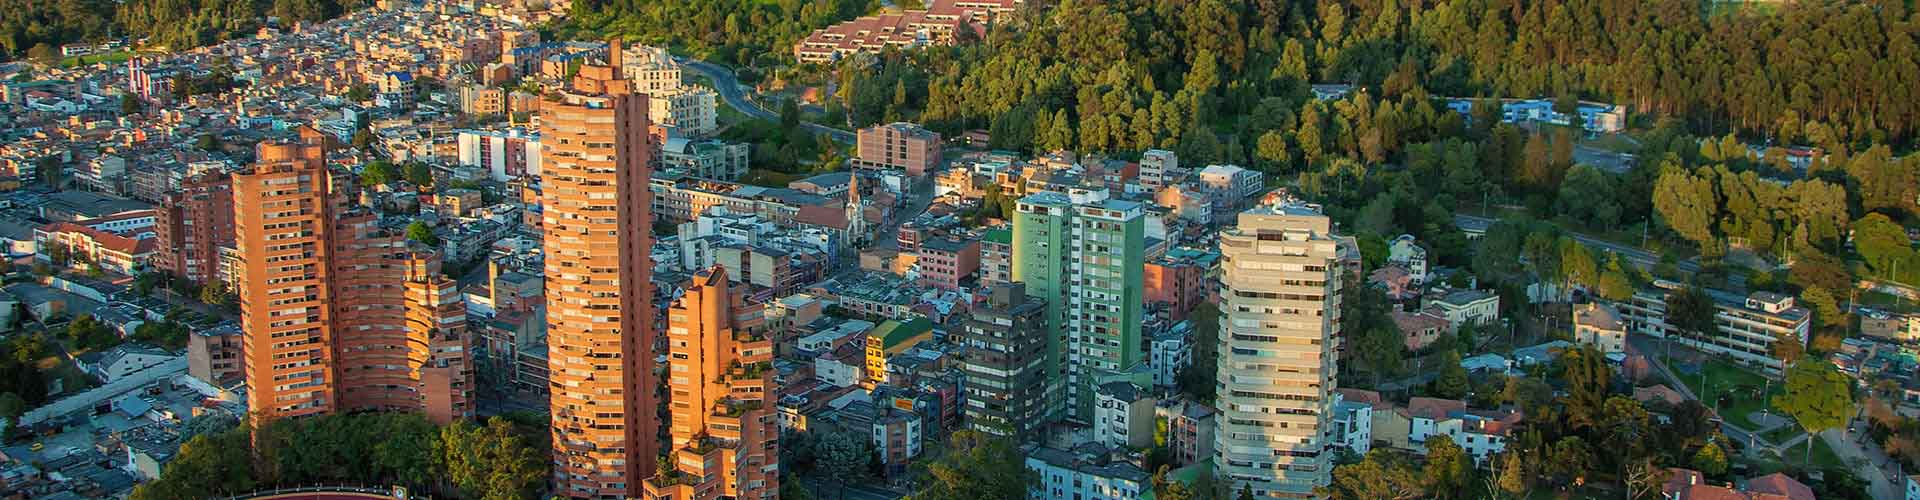 Bogota – Hostels in the Zona Rosa district. Maps for Bogota, Photos and Reviews for each hostel in Bogota.